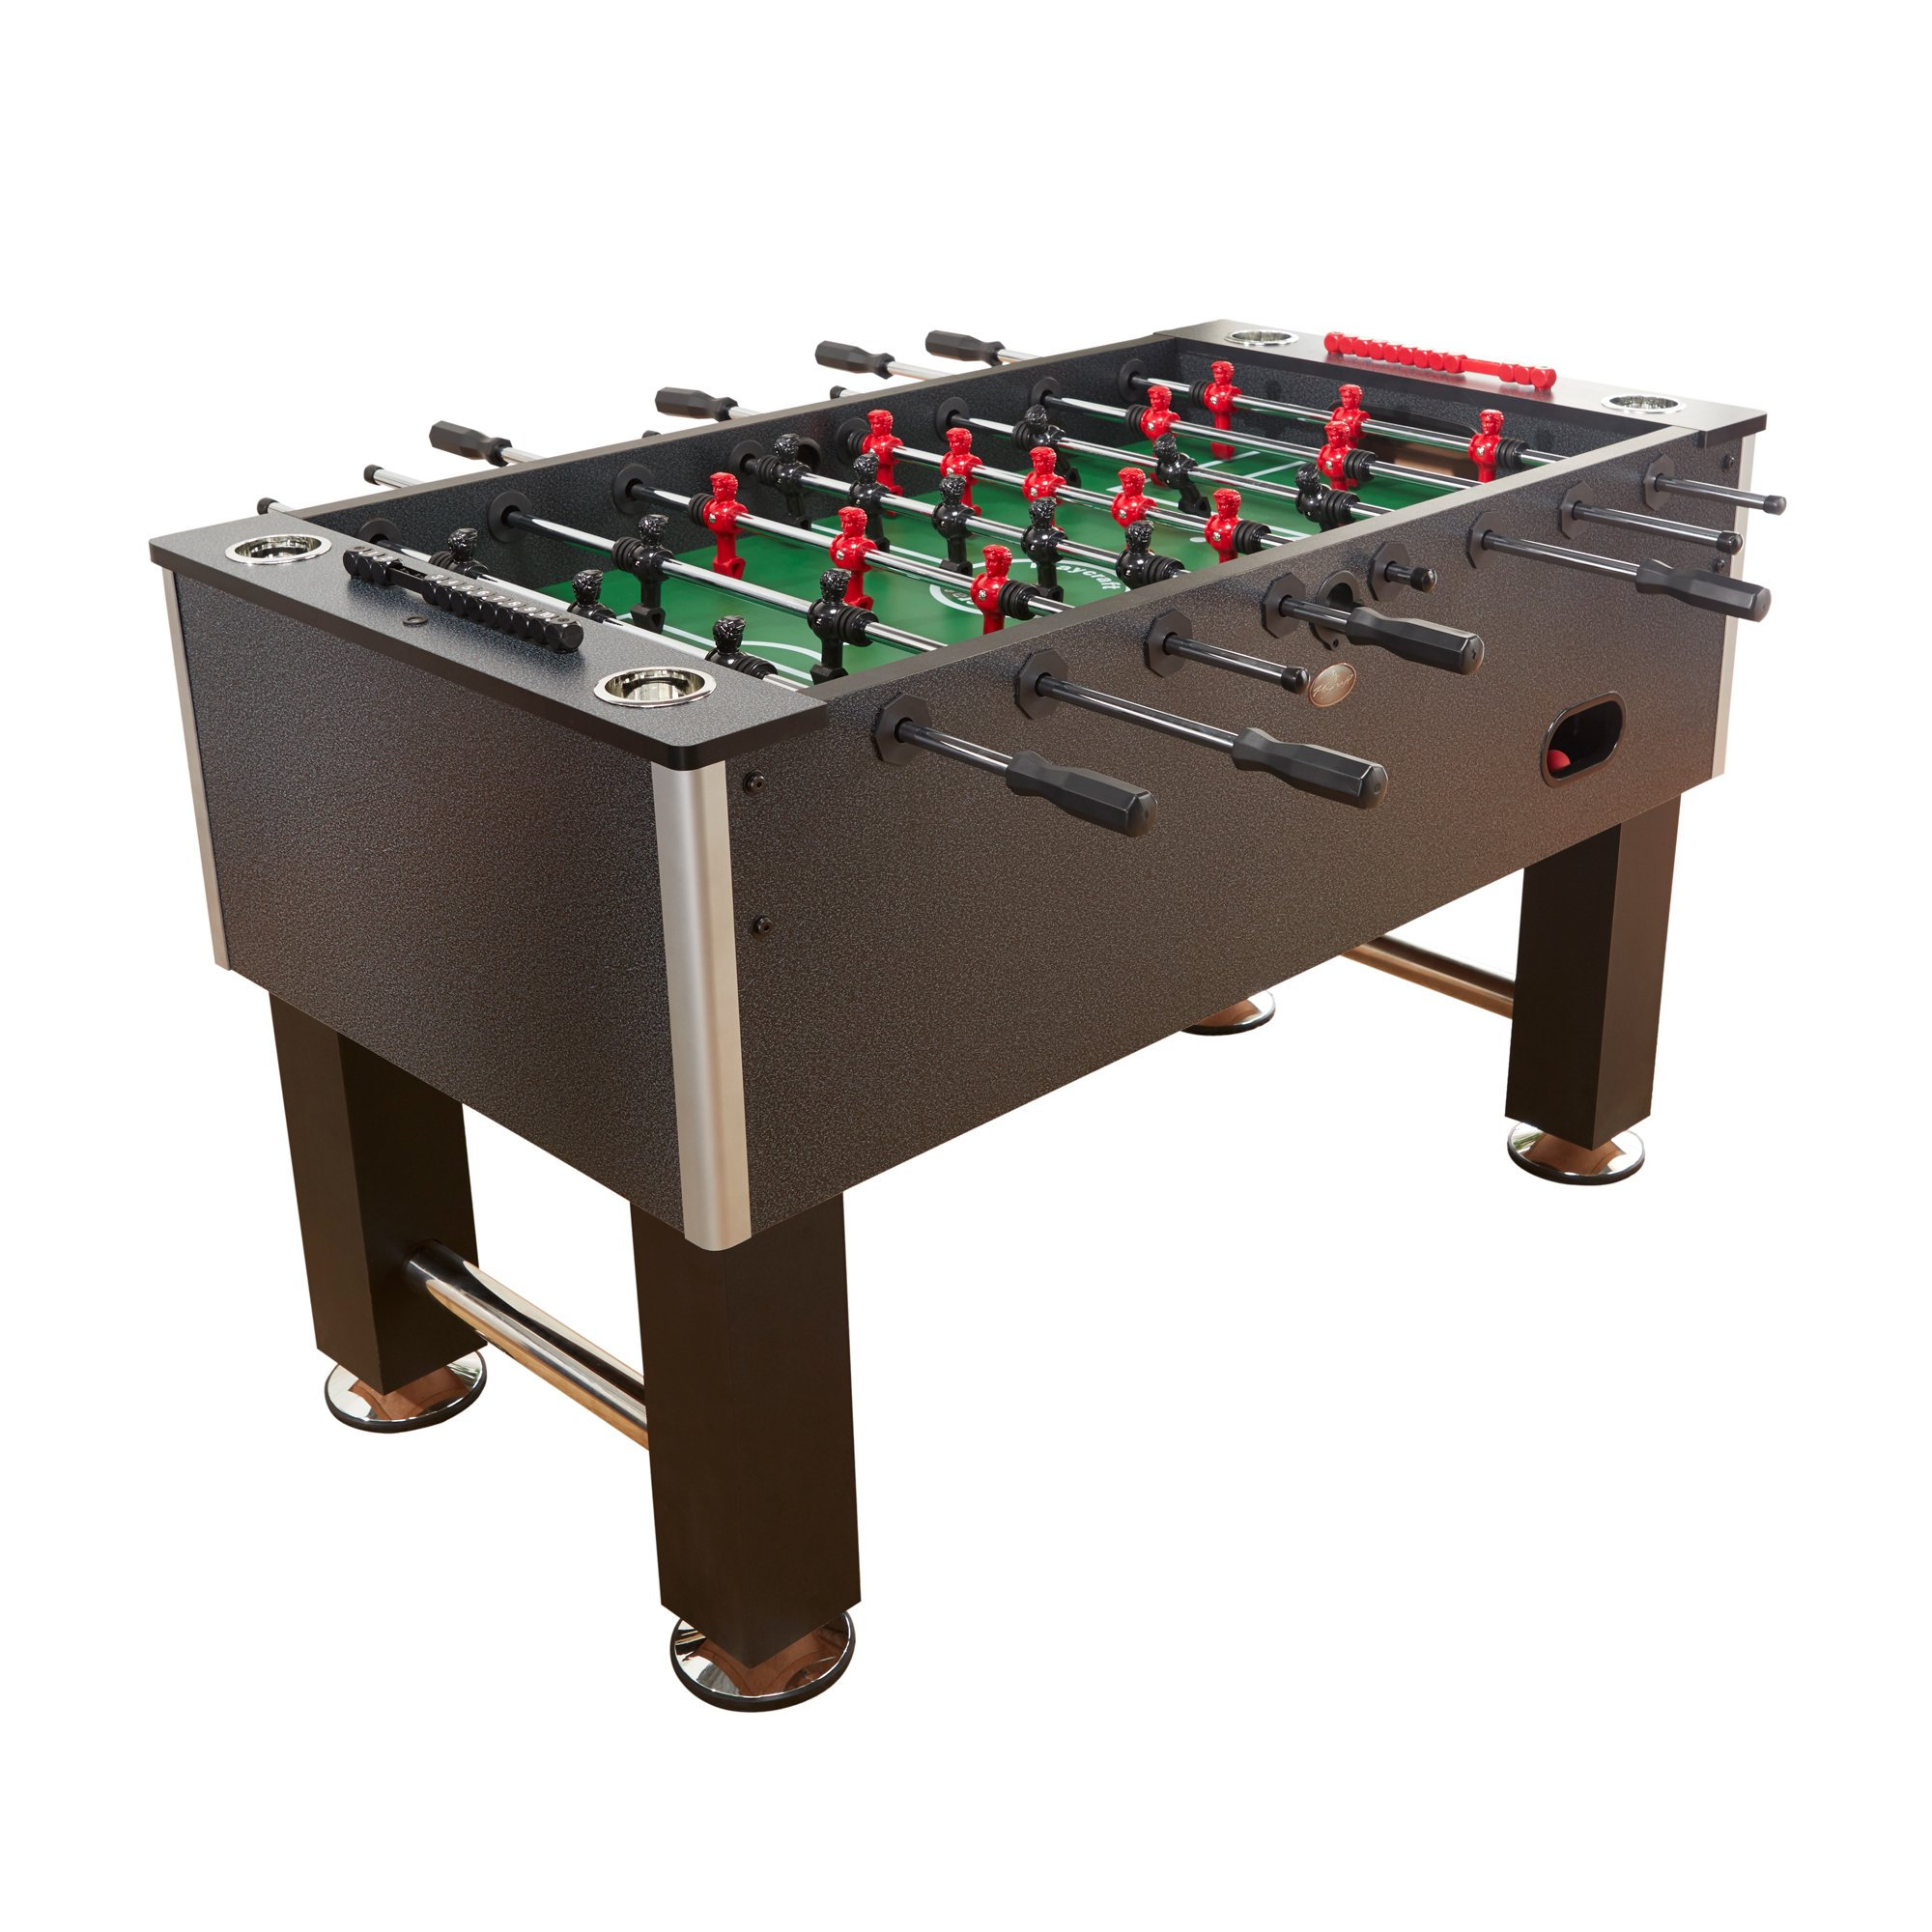 Playcraft Pitch Foosball Table, Charcoal by Playcraft